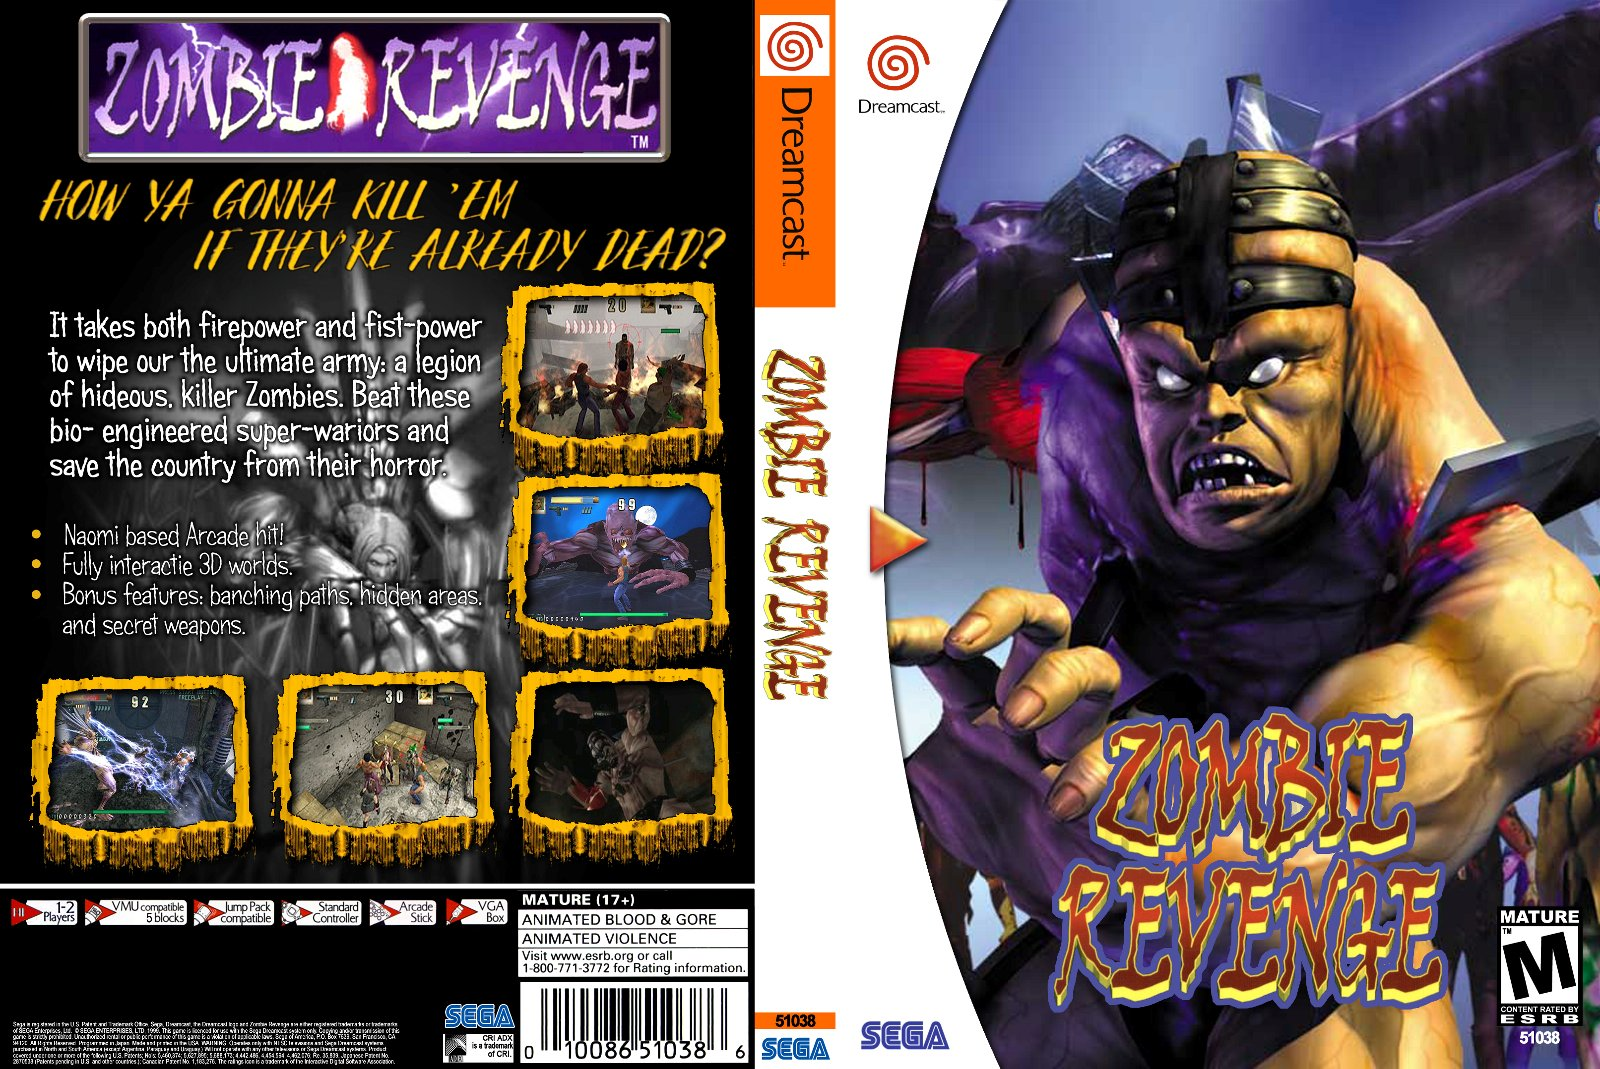 Zombie Revenge USA DC-KALISTO ROM / ISO Download for Dreamcast - Rom